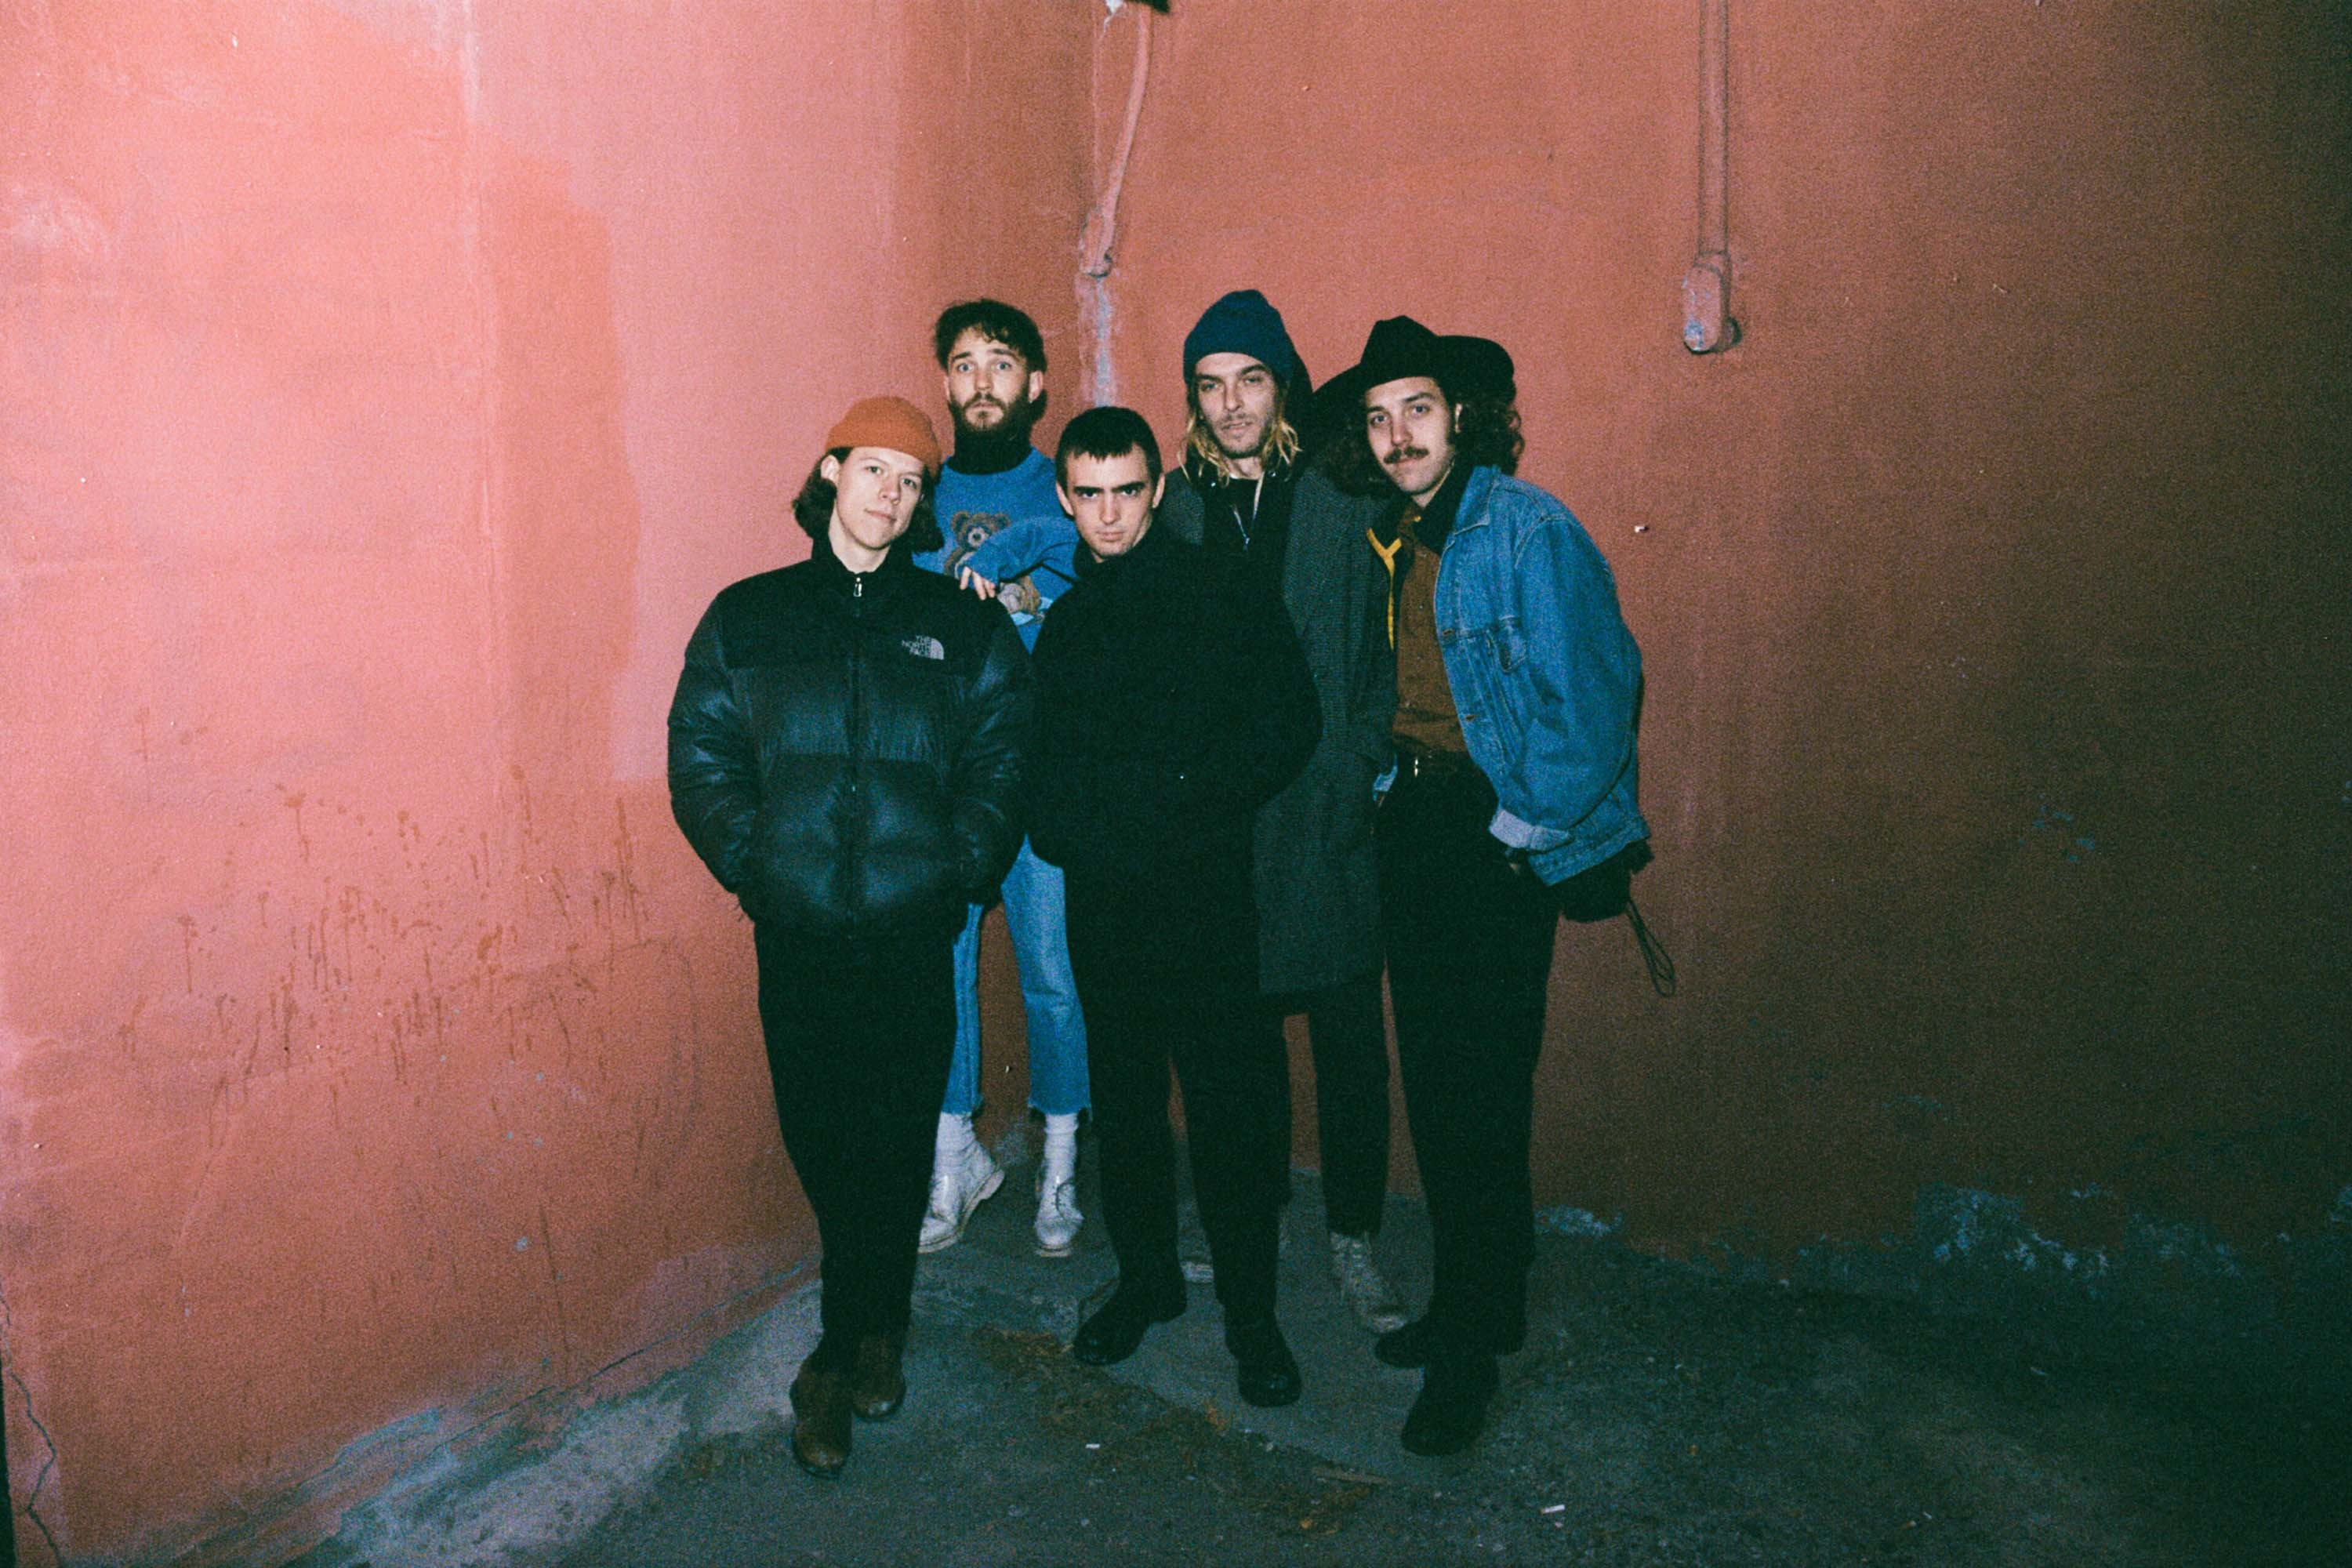 Pottery share new track & video for 'The Craft'